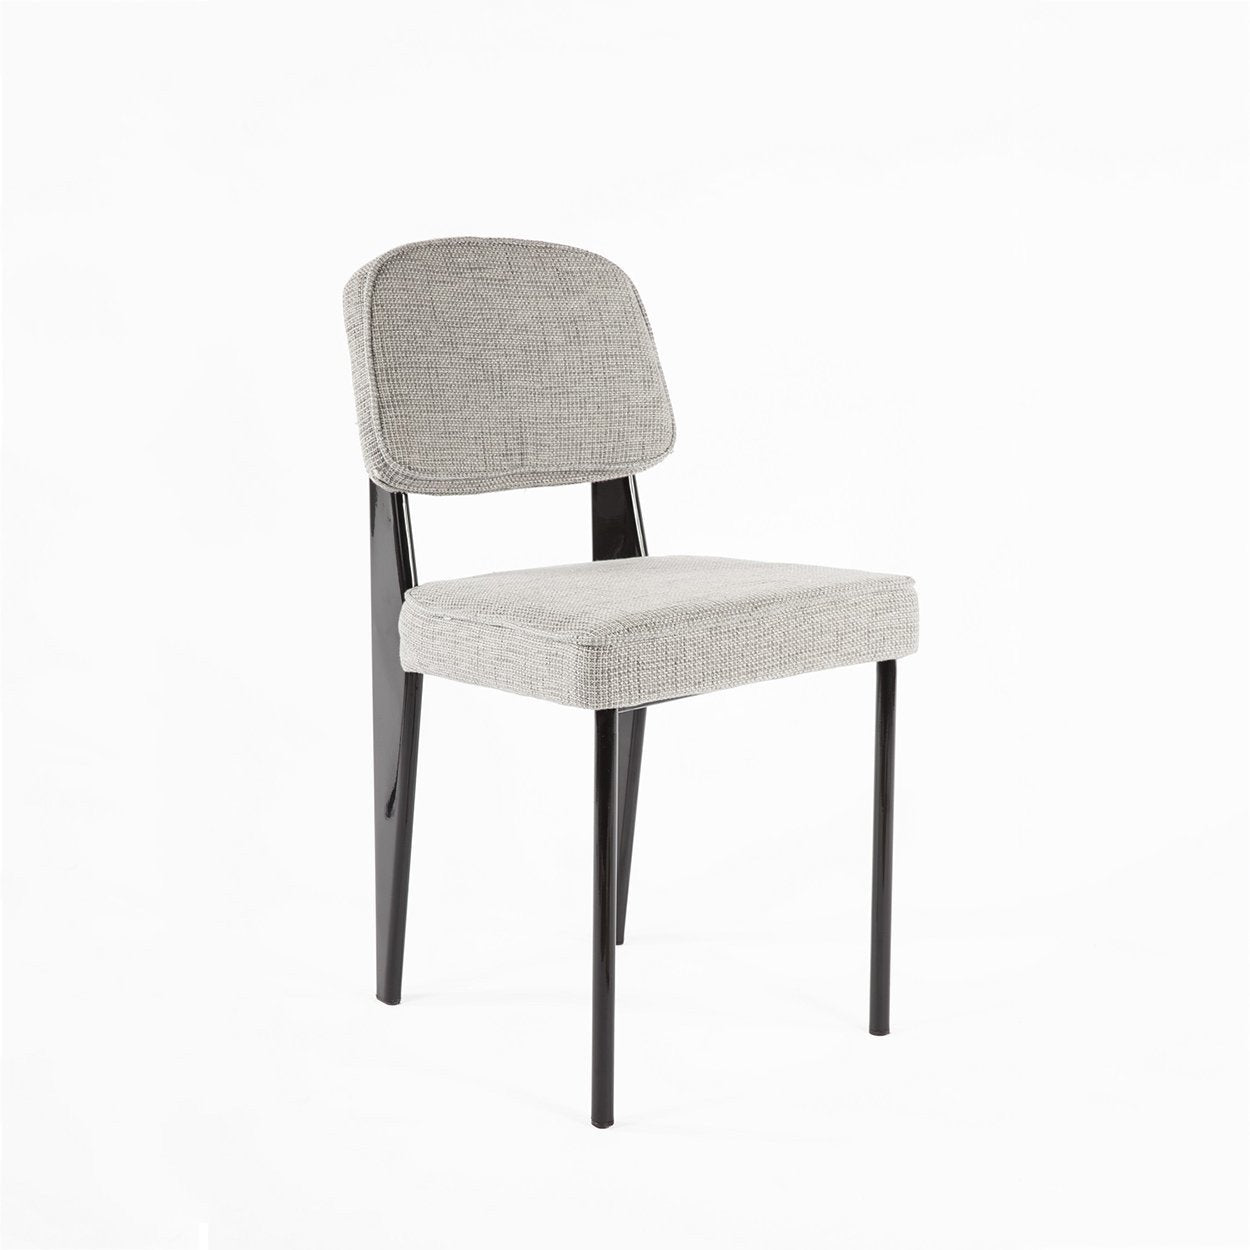 [FXC595GREY] The Schoolhouse padded chair